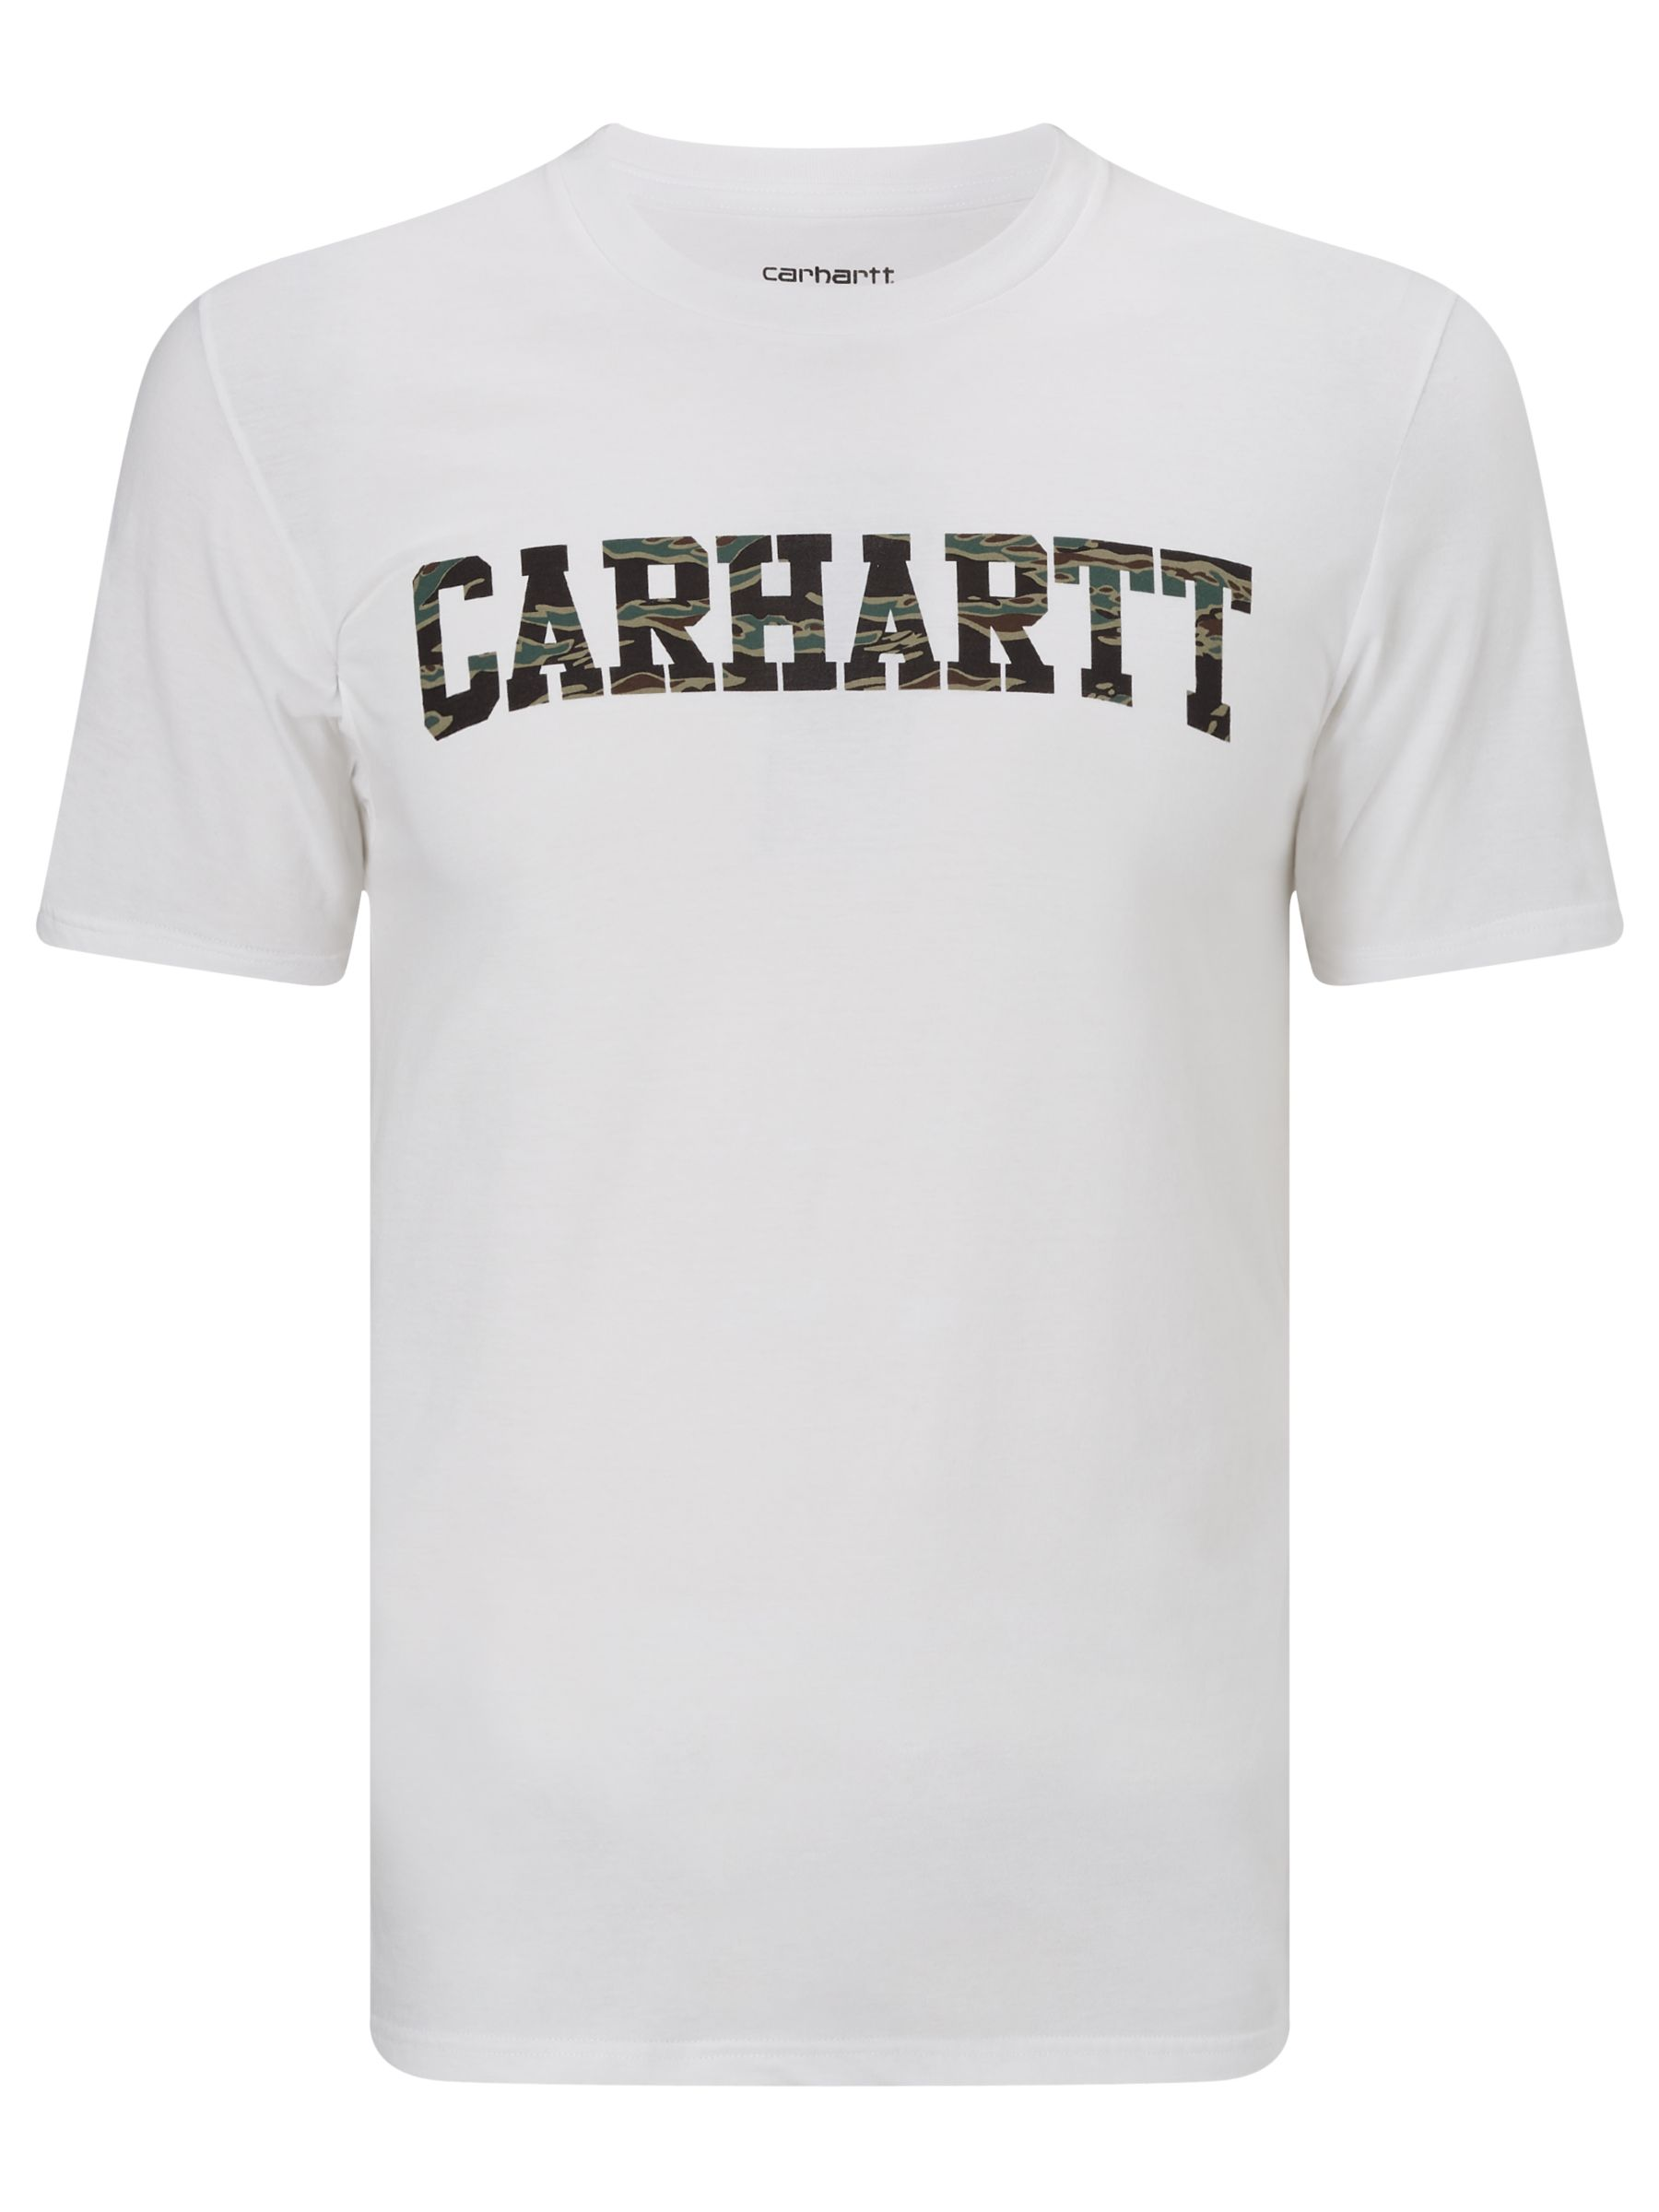 Carhartt WIP Carhartt WIP College T-Shirt, White/Camo Tiger